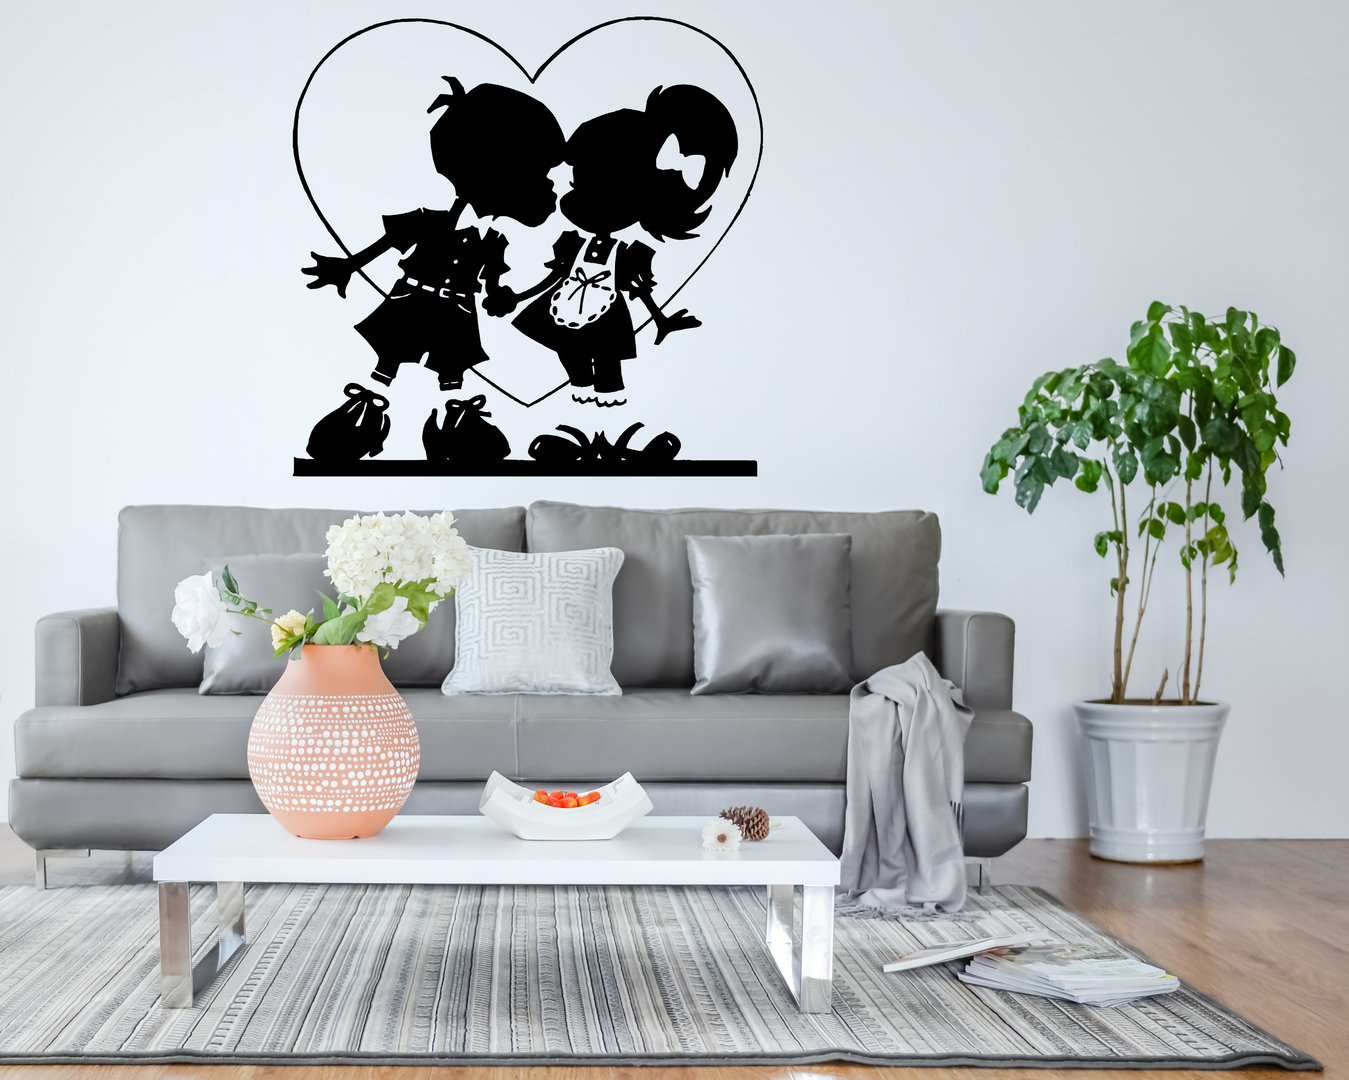 wandaufkleber wandtattoos und wall art sticker. Black Bedroom Furniture Sets. Home Design Ideas